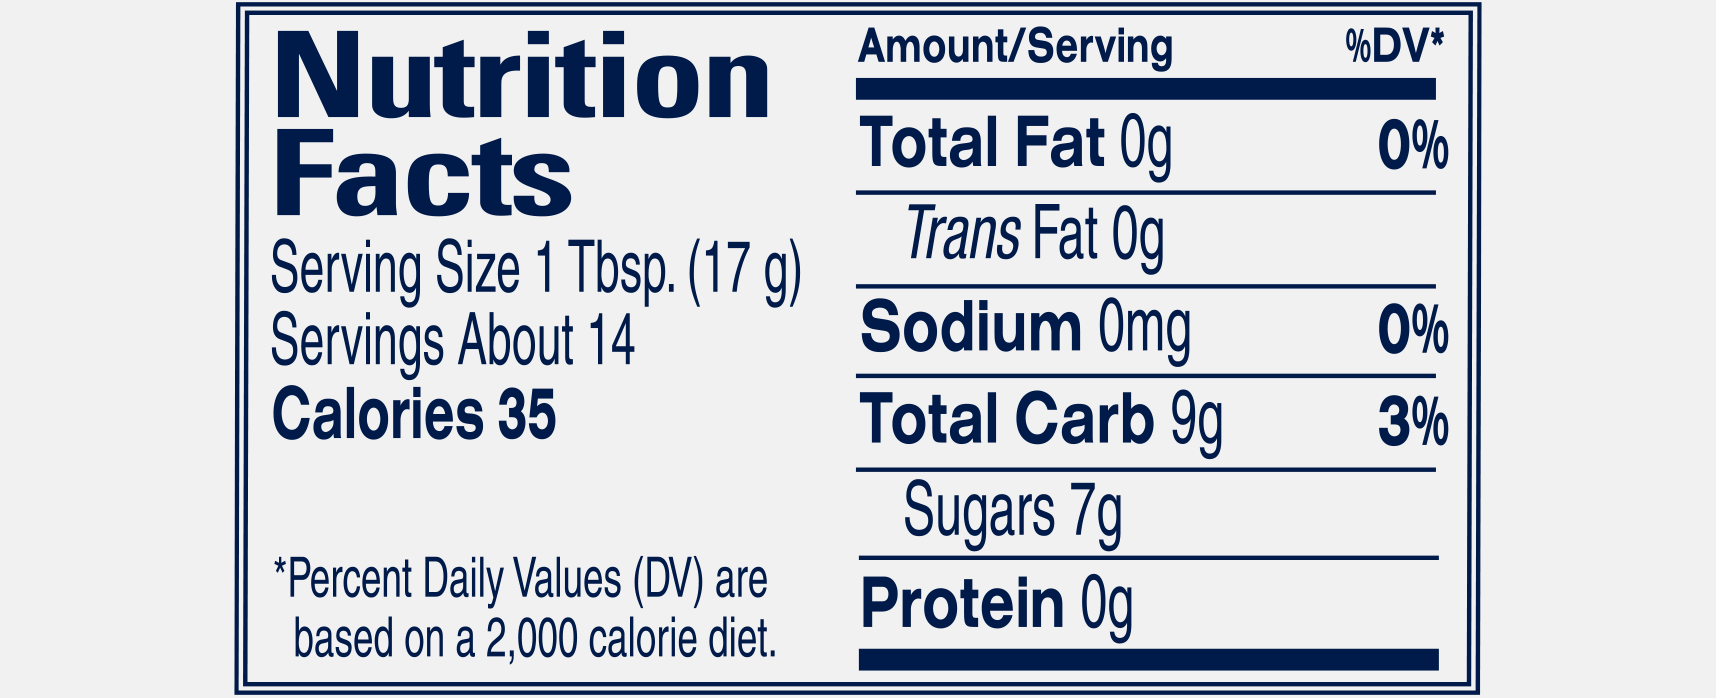 StDalfour_NutritionFacts_PineappleMango.png